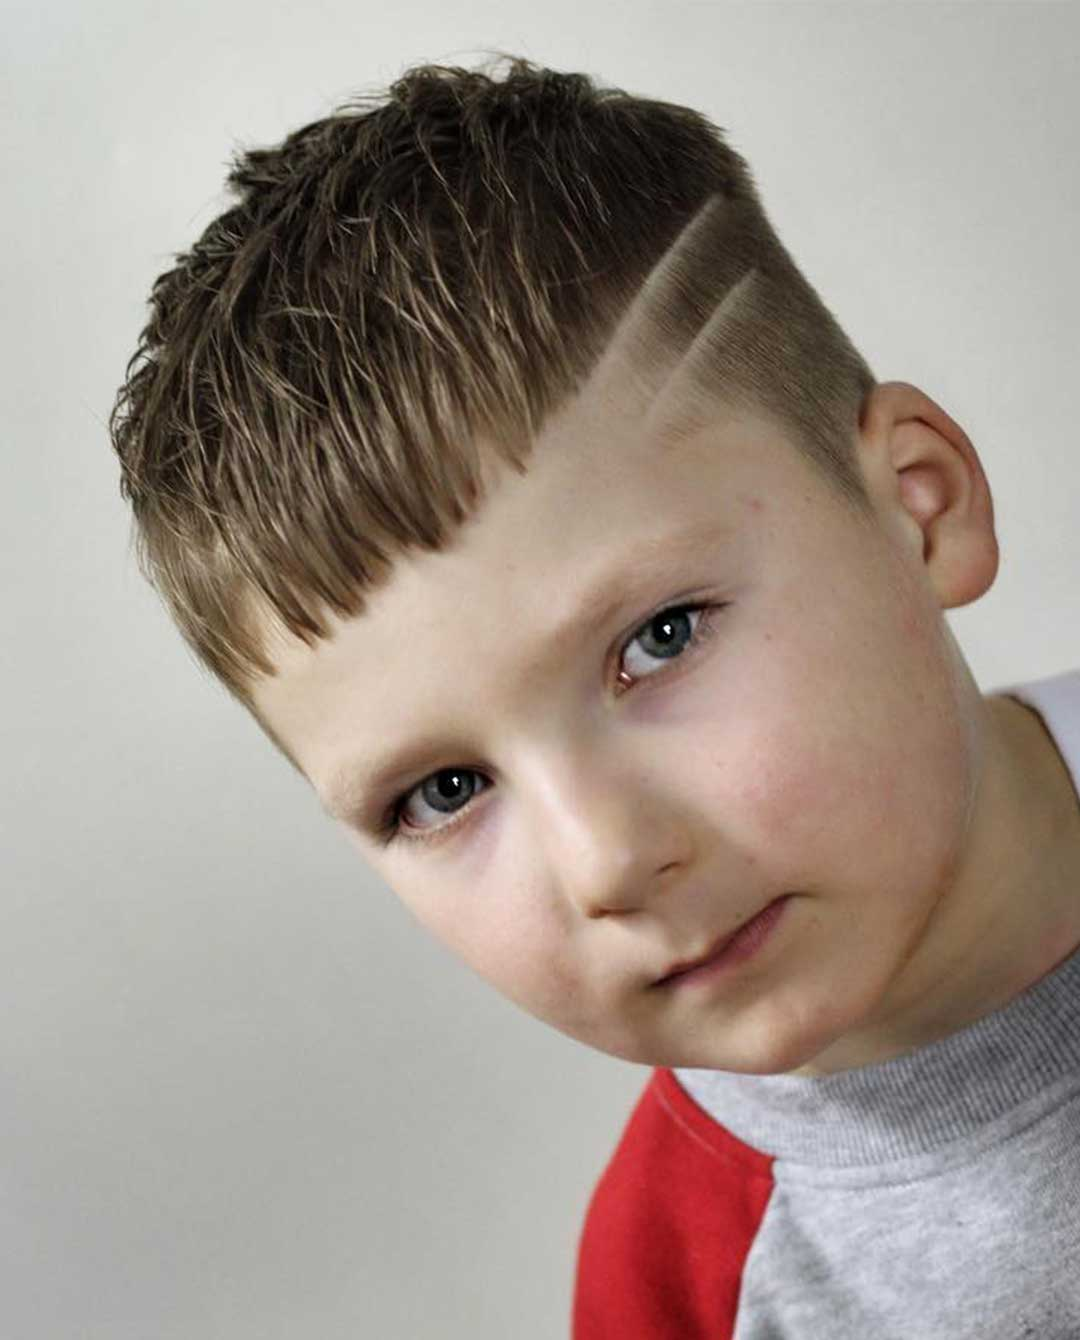 Pictures of Kids Haircuts